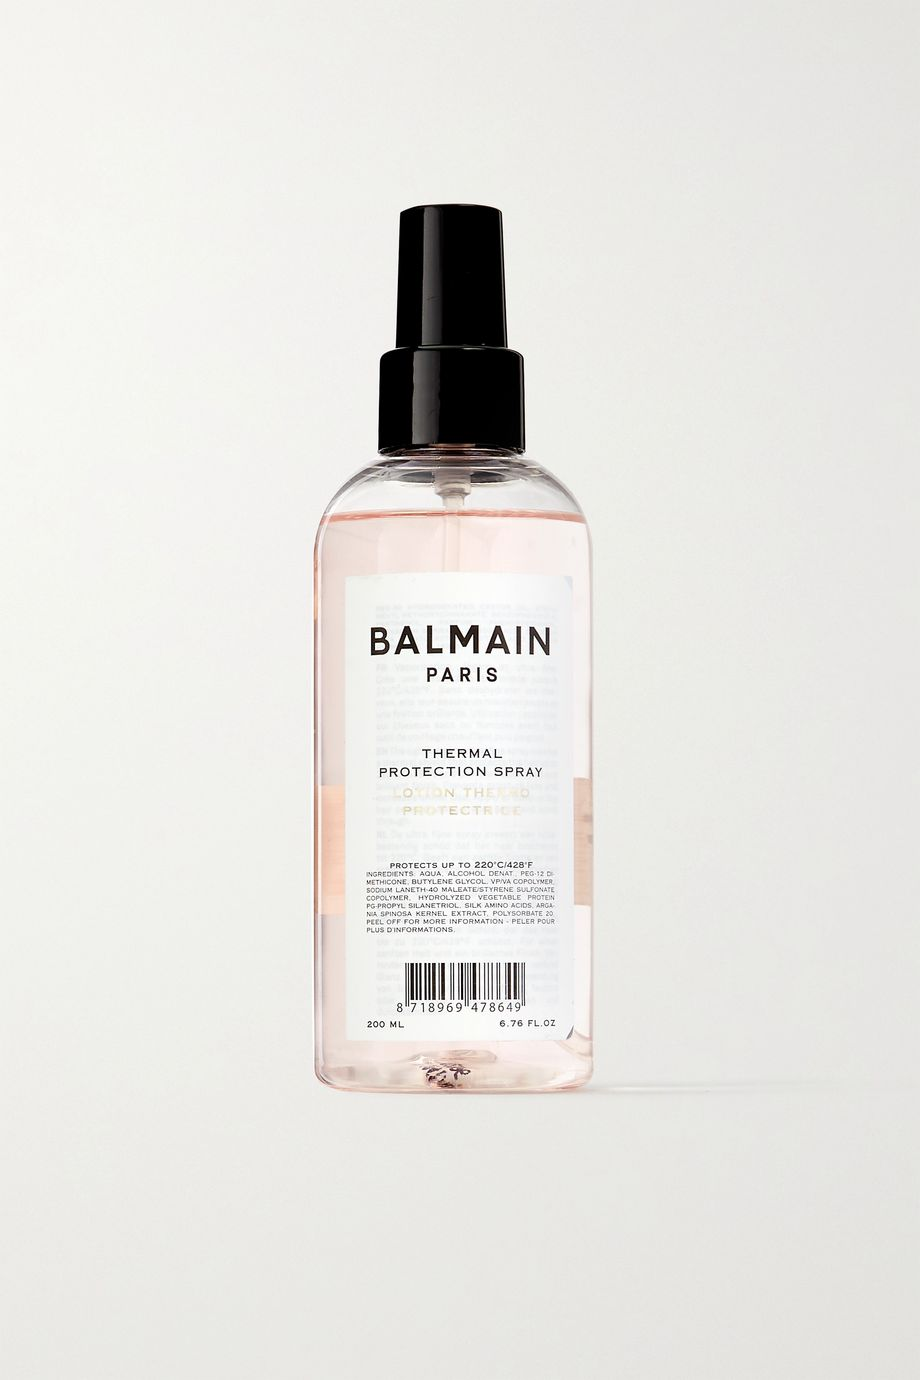 BALMAIN PARIS HAIR COUTURE Thermal Protection Spray, 200ml